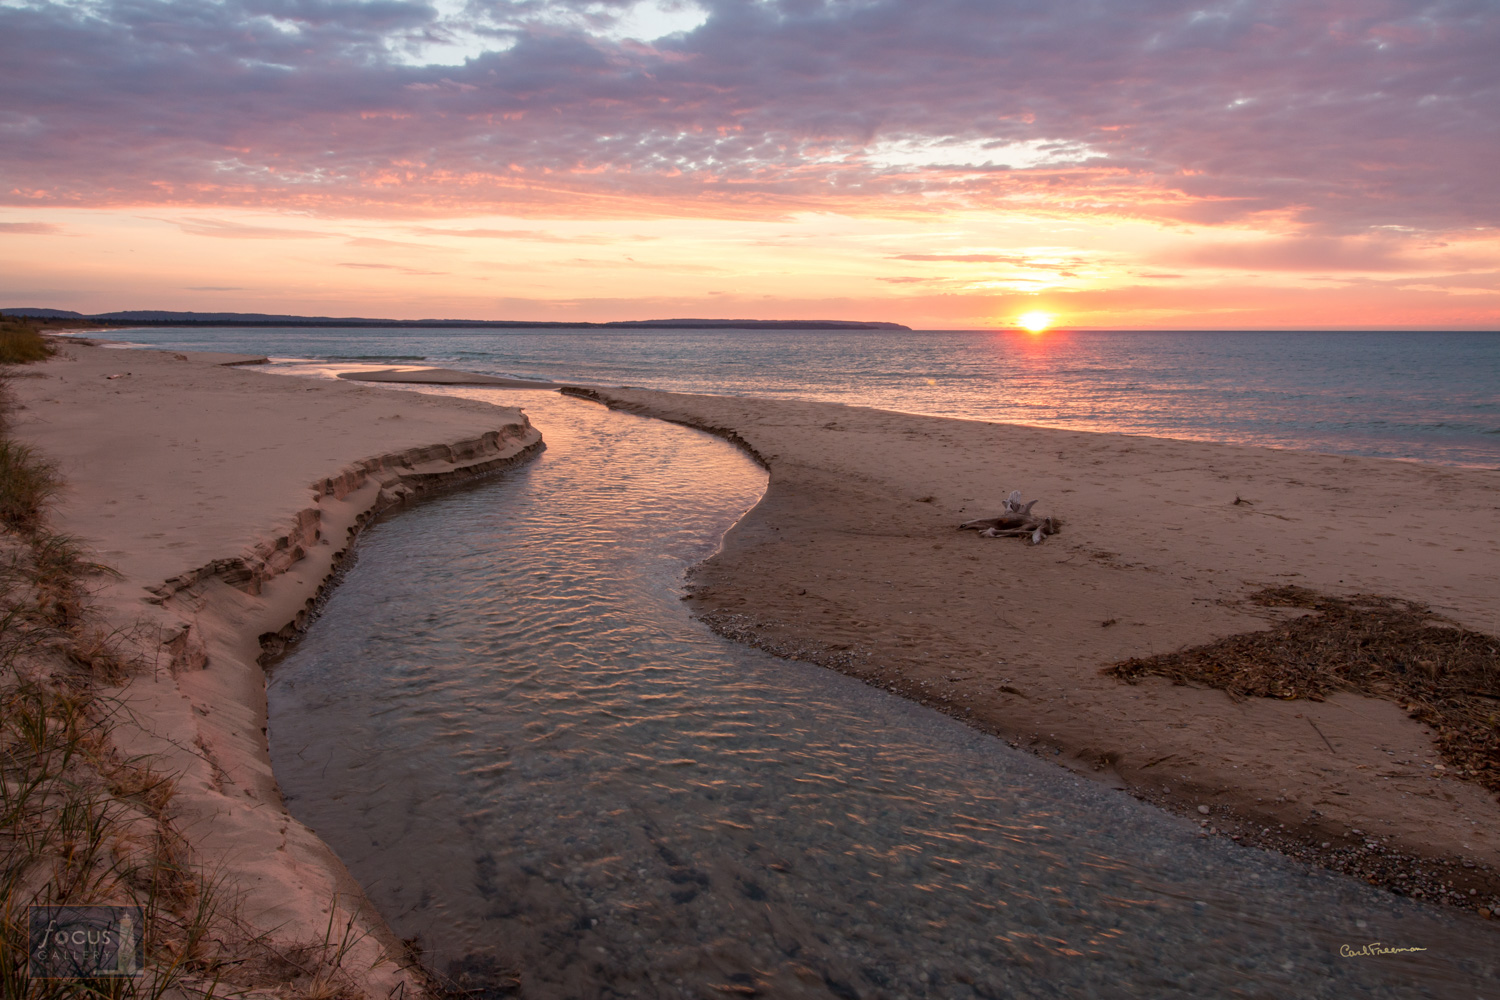 Photo © Carl Freeman Small creeks that flow into Lake Michigan change course frequently and can get dammed up by sifting sands...